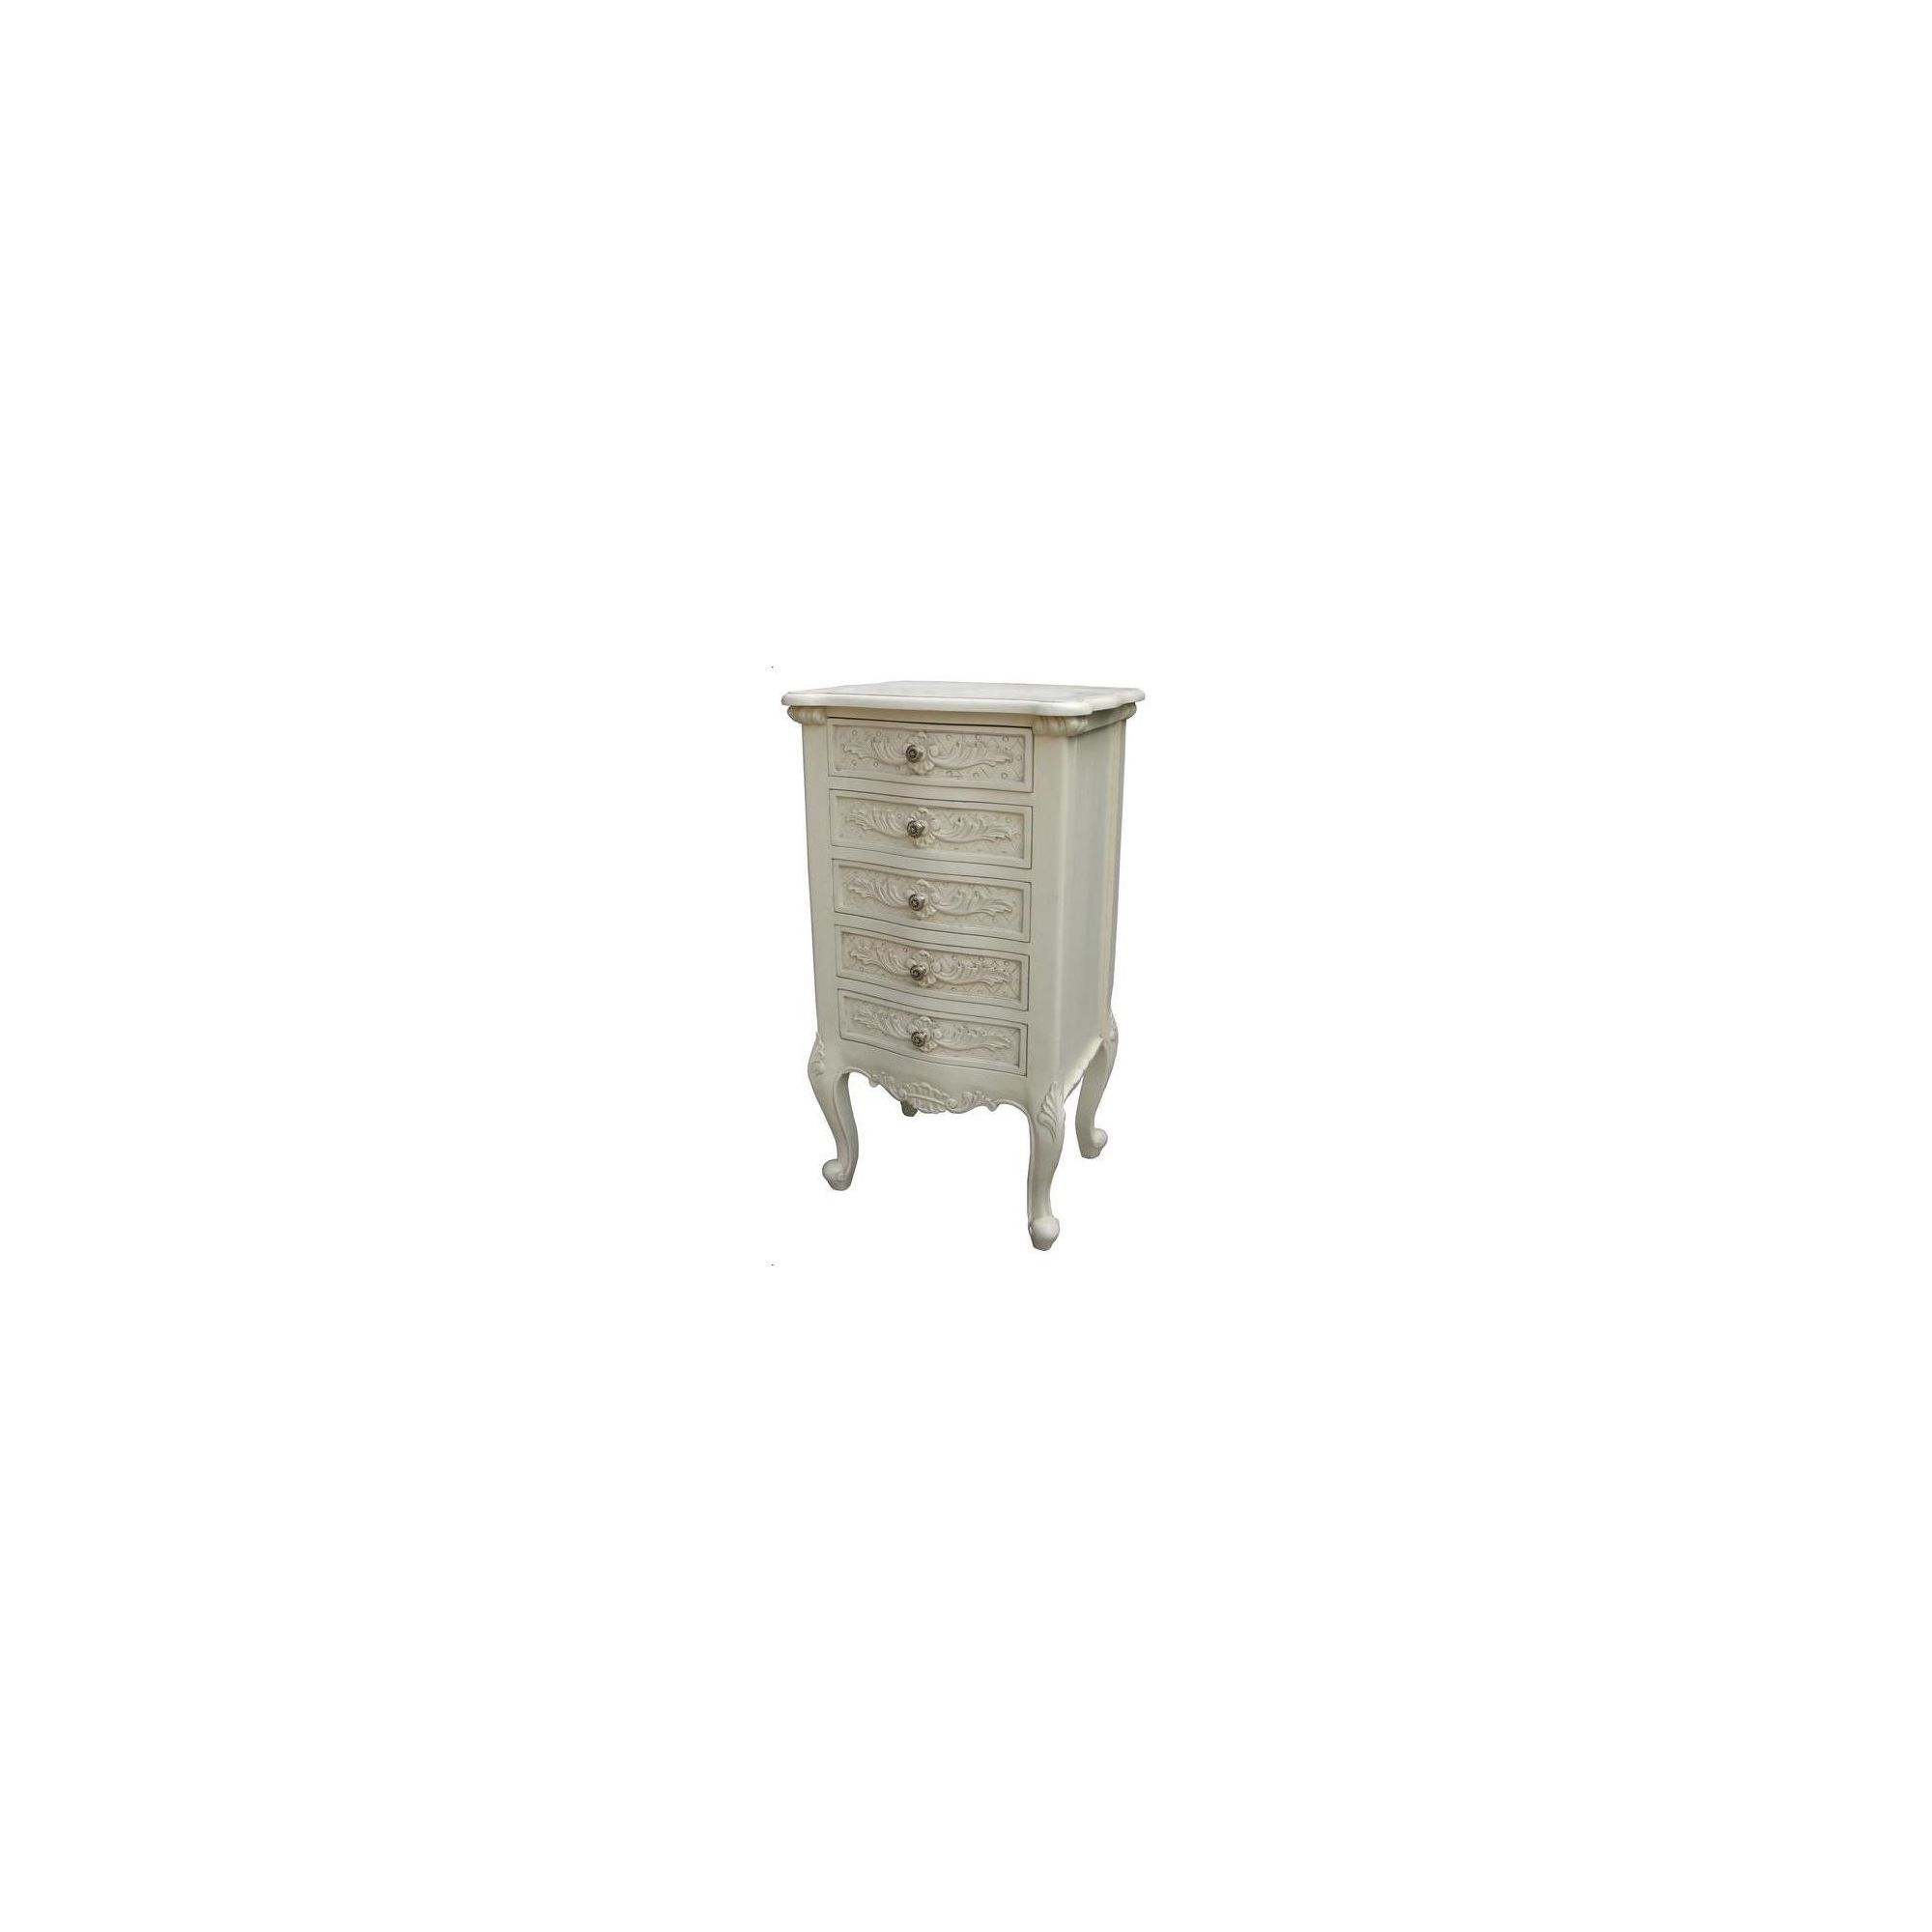 Lock stock and barrel Mahogany Valbonne 5 Drawer Chest - Antique White at Tesco Direct